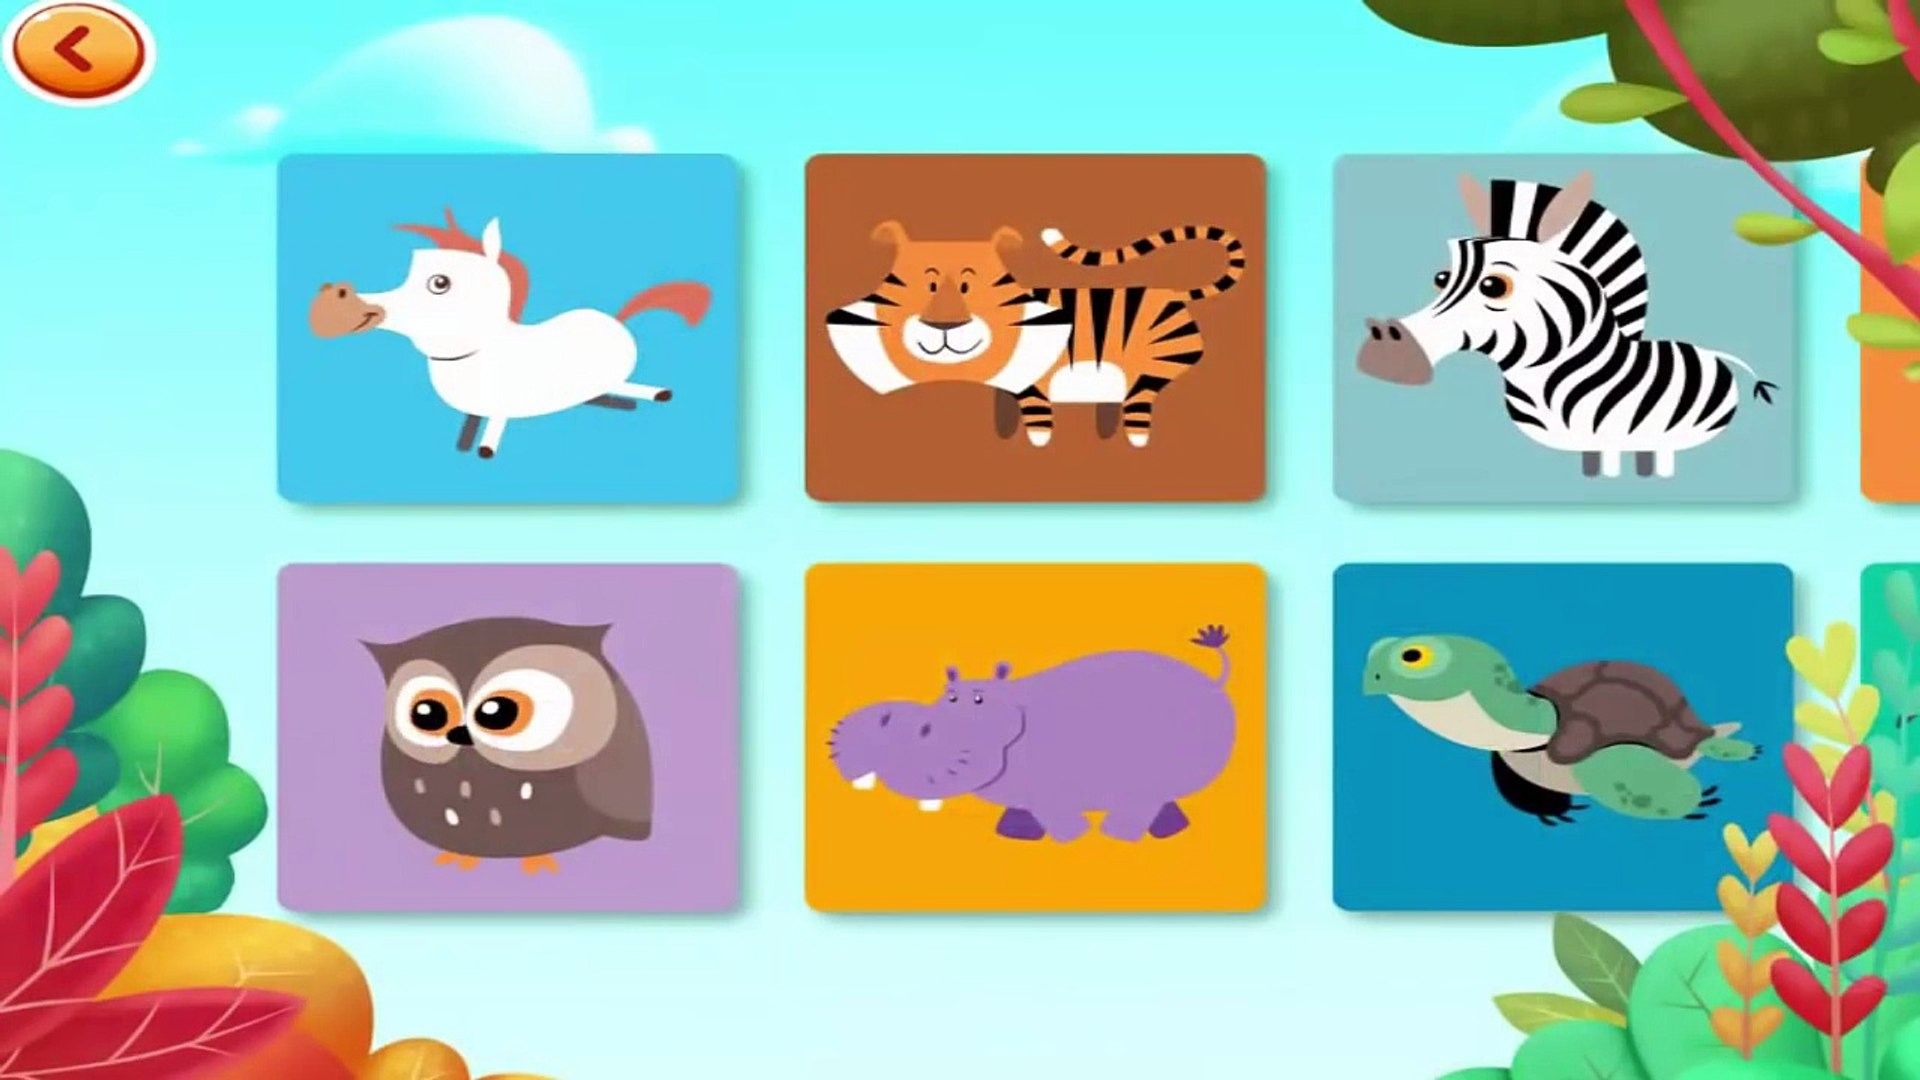 Playkids - Preschool Cartoons, Books and Games - Education App For Kids - Best New Apss For Kids